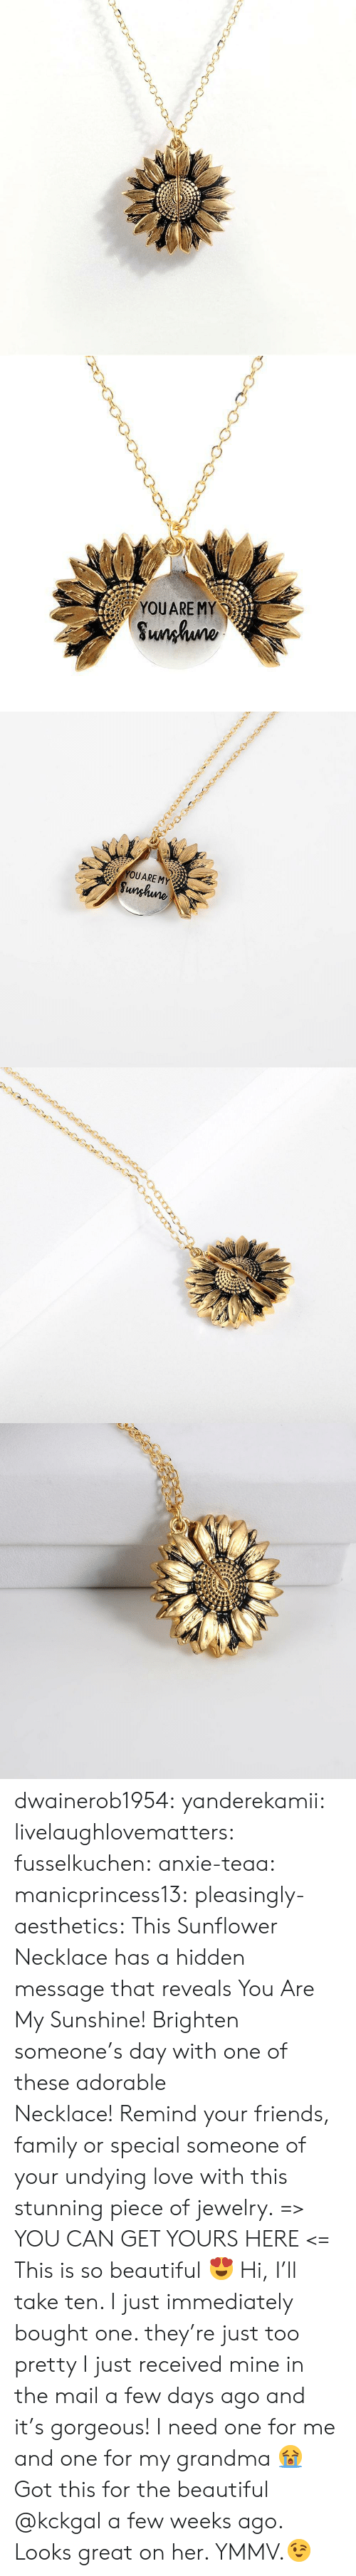 Beautiful, Family, and Friends: YOUARE MY  Sunhuno   YOUARE MY  Sunghune dwainerob1954:  yanderekamii:  livelaughlovematters:  fusselkuchen: anxie-teaa:   manicprincess13:   pleasingly-aesthetics:  This Sunflower Necklace has a hidden message that reveals You Are My Sunshine! Brighten someone's day with one of these adorable Necklace! Remind your friends, family or special someone of your undying love with this stunning piece of jewelry. => YOU CAN GET YOURS HERE <=   This is so beautiful 😍    Hi, I'll take ten.    I just immediately bought one. they're just too pretty   I just received mine in the mail a few days ago and it's gorgeous!  I need one for me and one for my grandma 😭  Got this for the beautiful @kckgal a few weeks ago.  Looks great on her. YMMV.😉